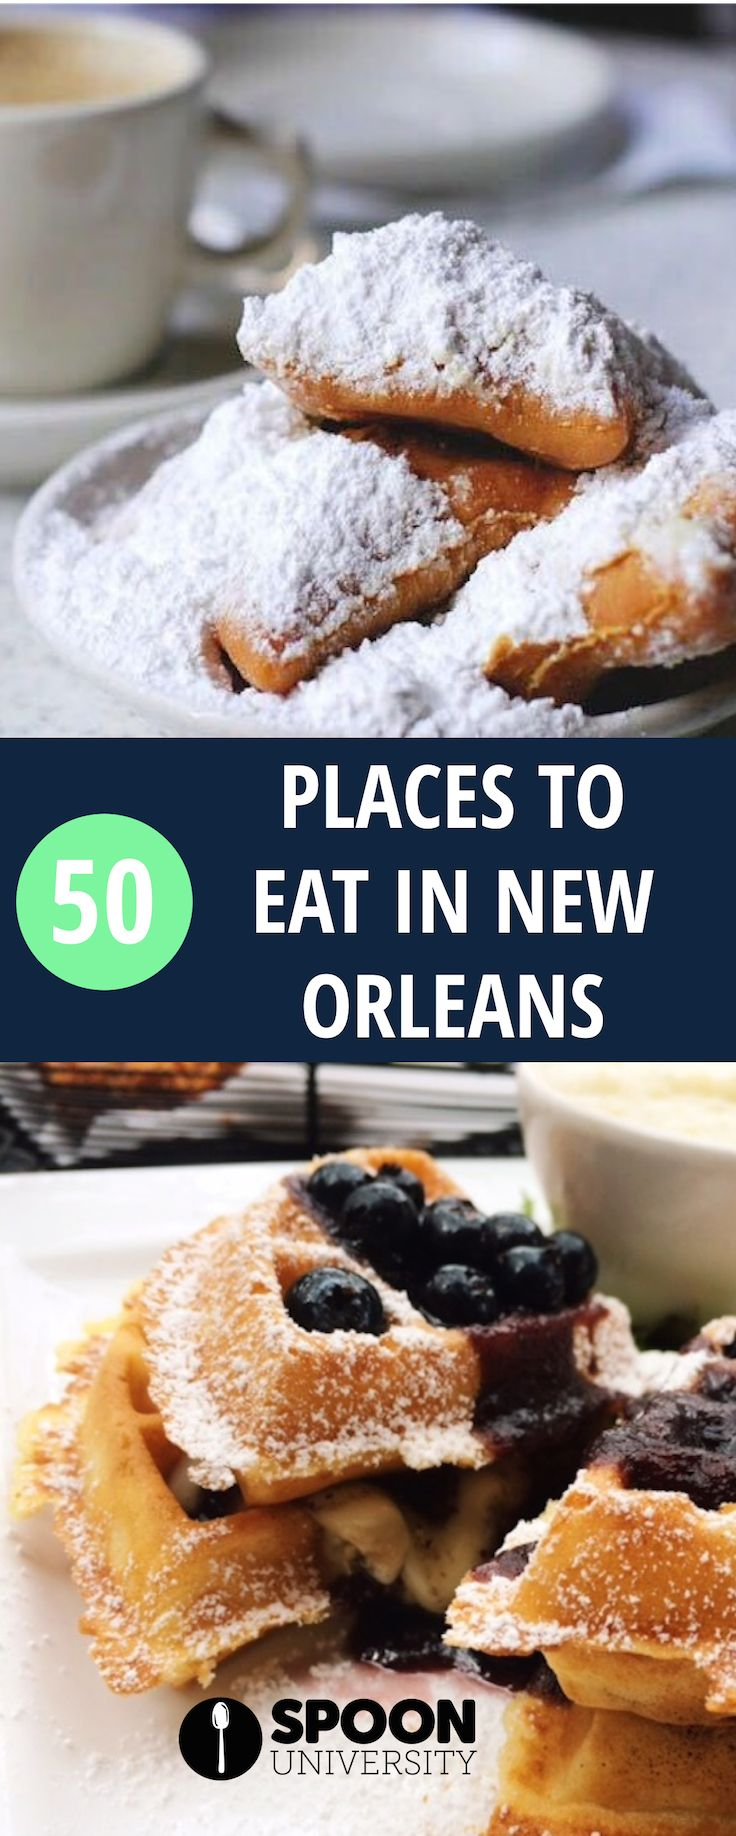 To eat in New Orleans is to experience the most vibrant and unique culture within our nation's borders.